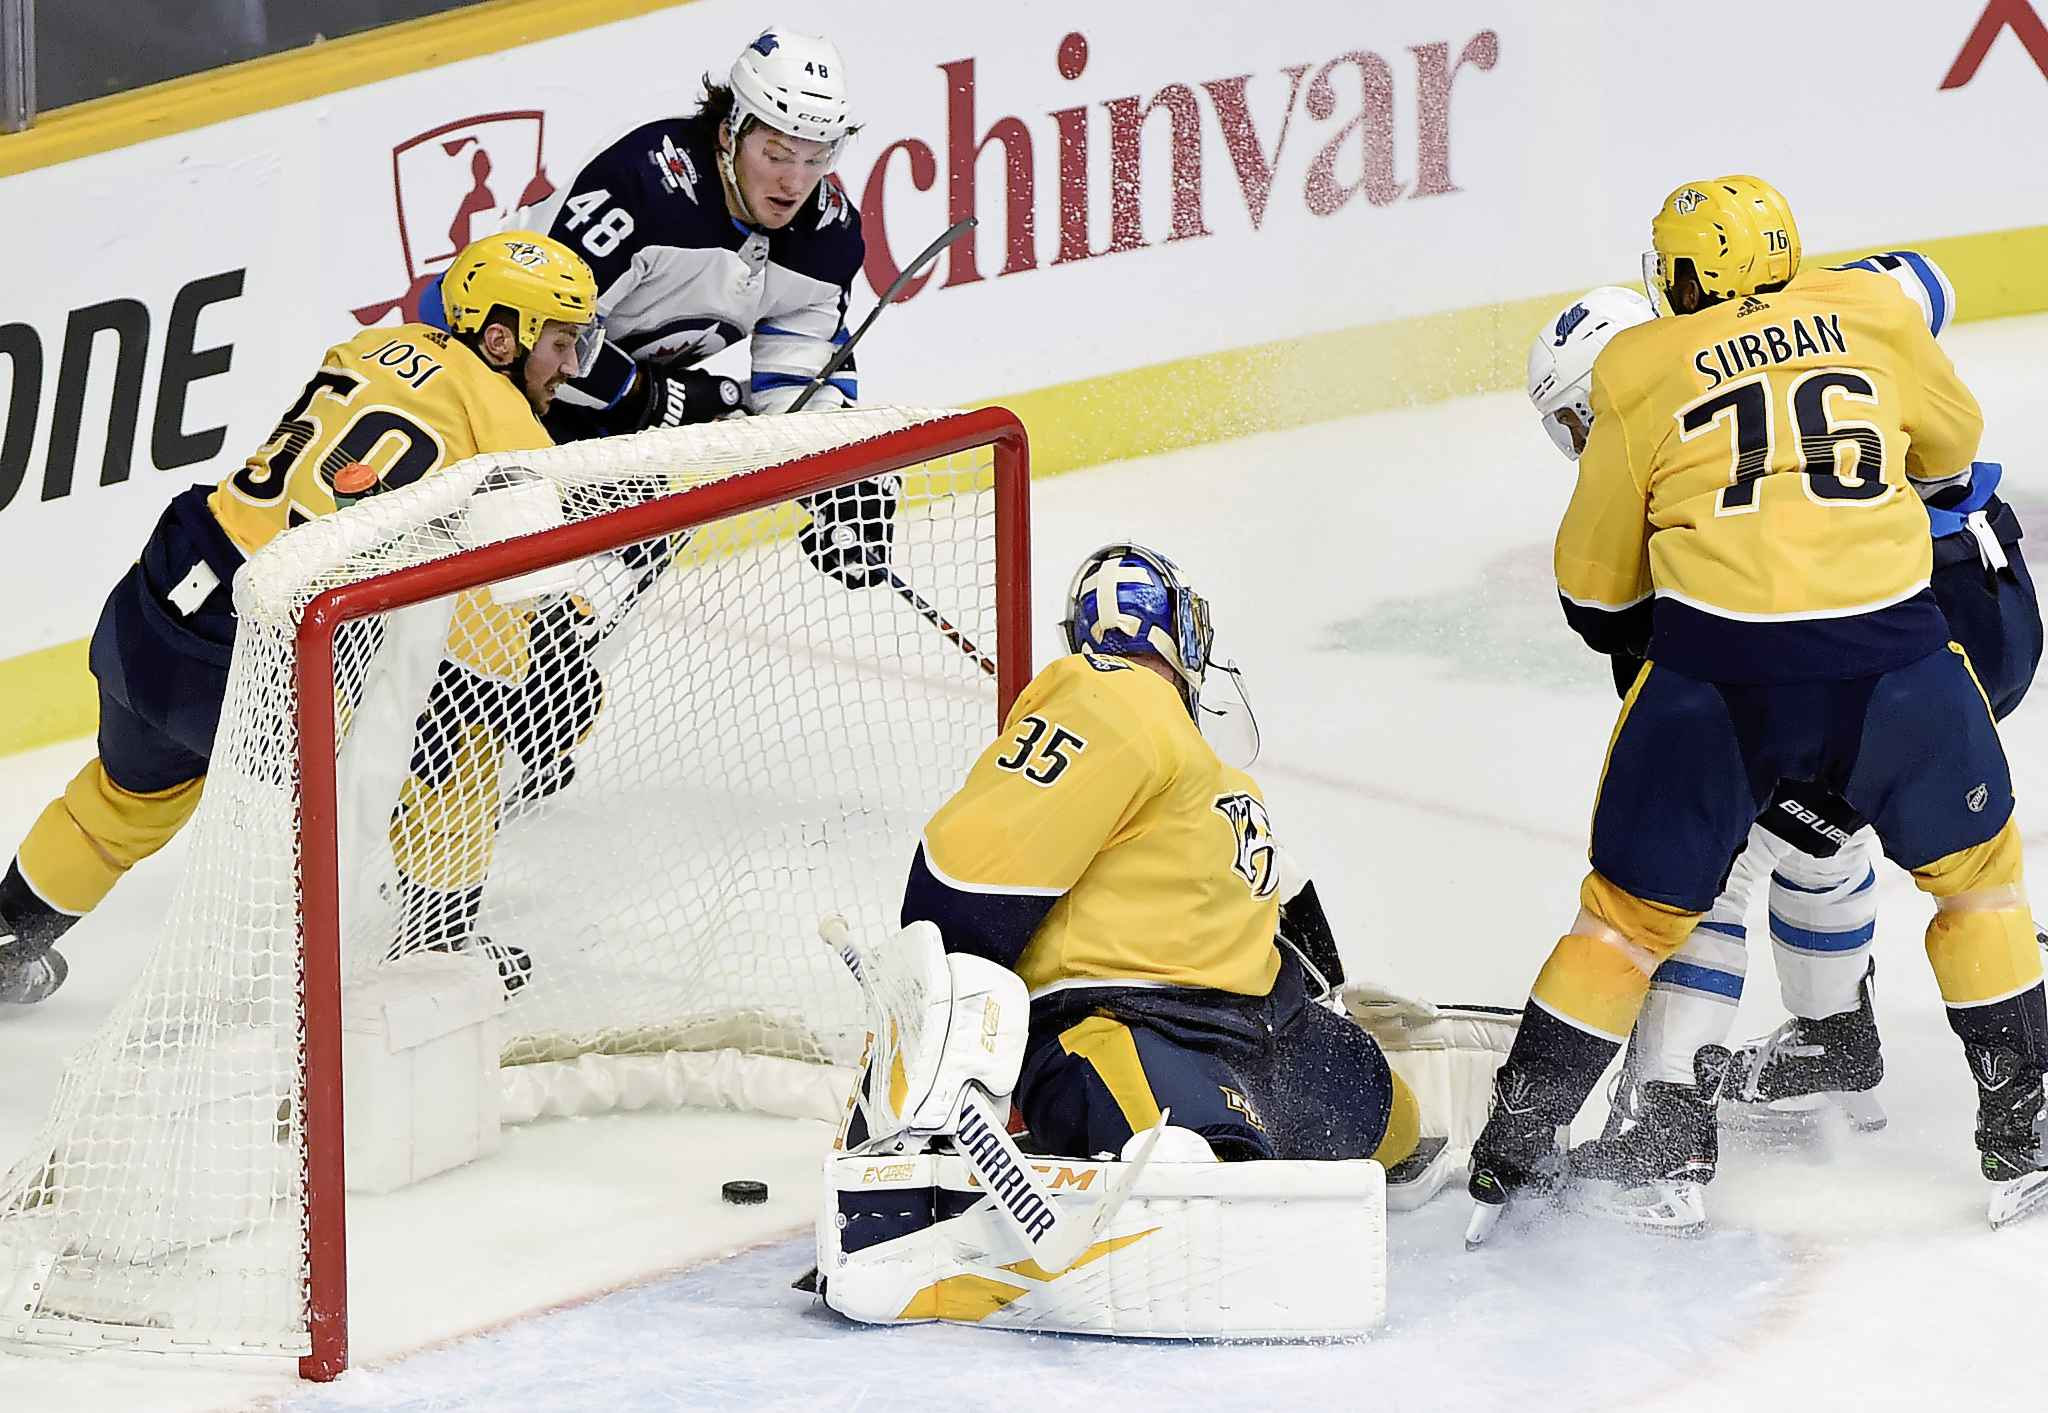 Lemieux scores a goal against Nashville Predators goaltender Pekka Rinne in January.